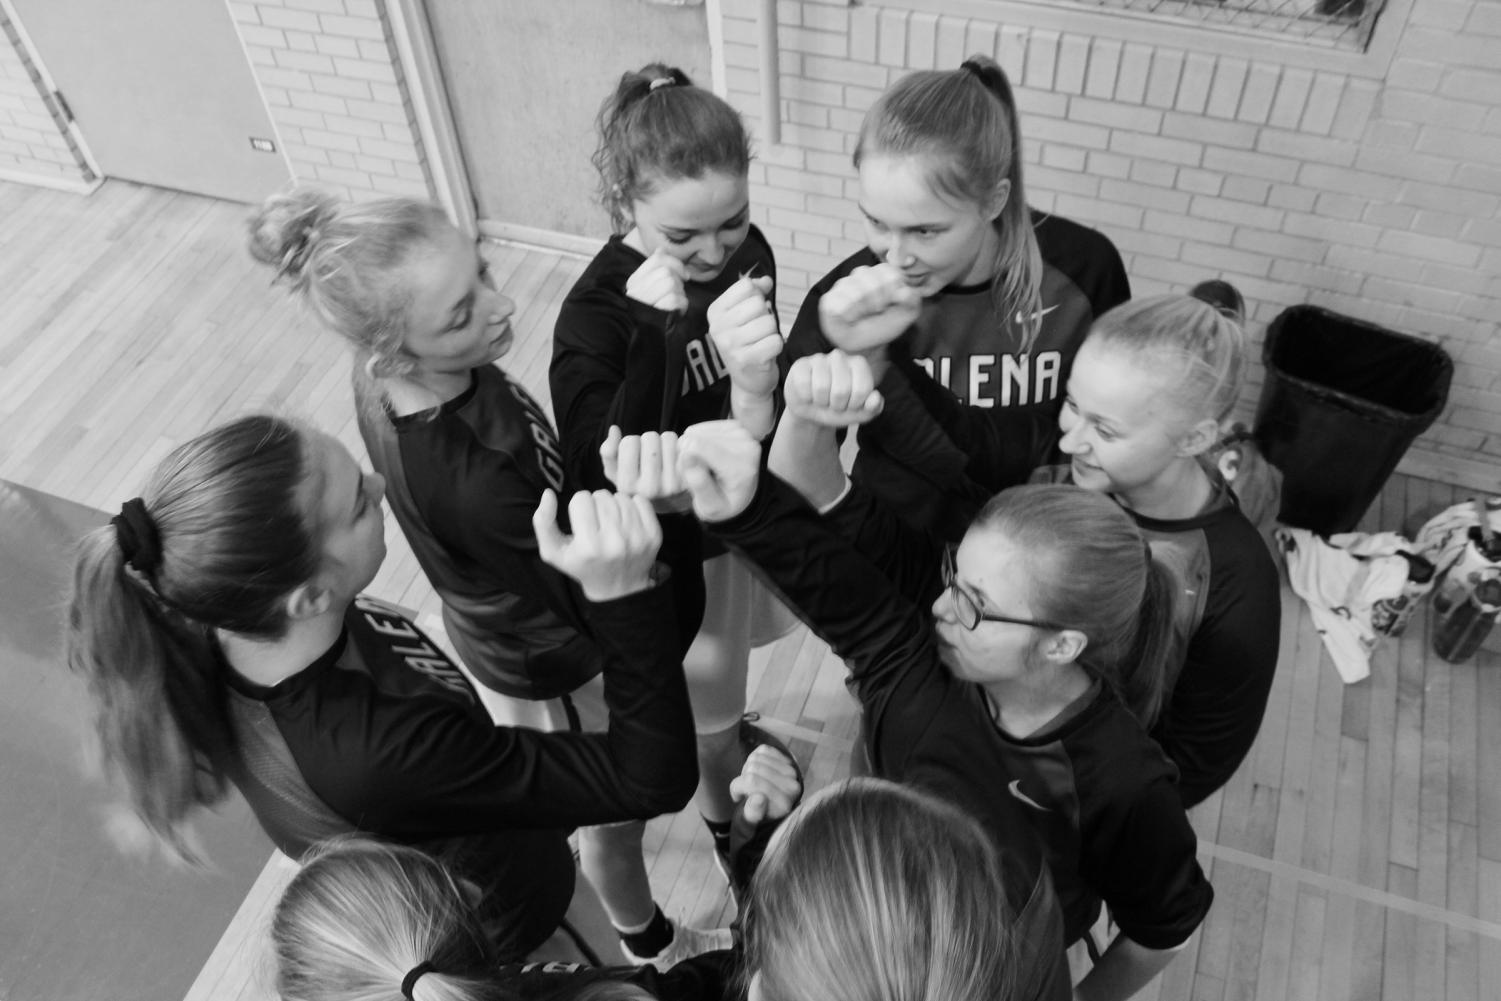 """Pirates on three...1...2...3...Pirates!"" Corrina Noble '21, Maggie Furlong '22, Gracie Wubben '20, Sami Wasmund '20, Alexa Haase '20, and Anna Walburg '19 get go over their game plan before getting ready to run out for warm ups. The Pirates prepare like this before every game. ""Having our team talks before each game get me really pumped to play,"" said point guard, Maggie Furlong."